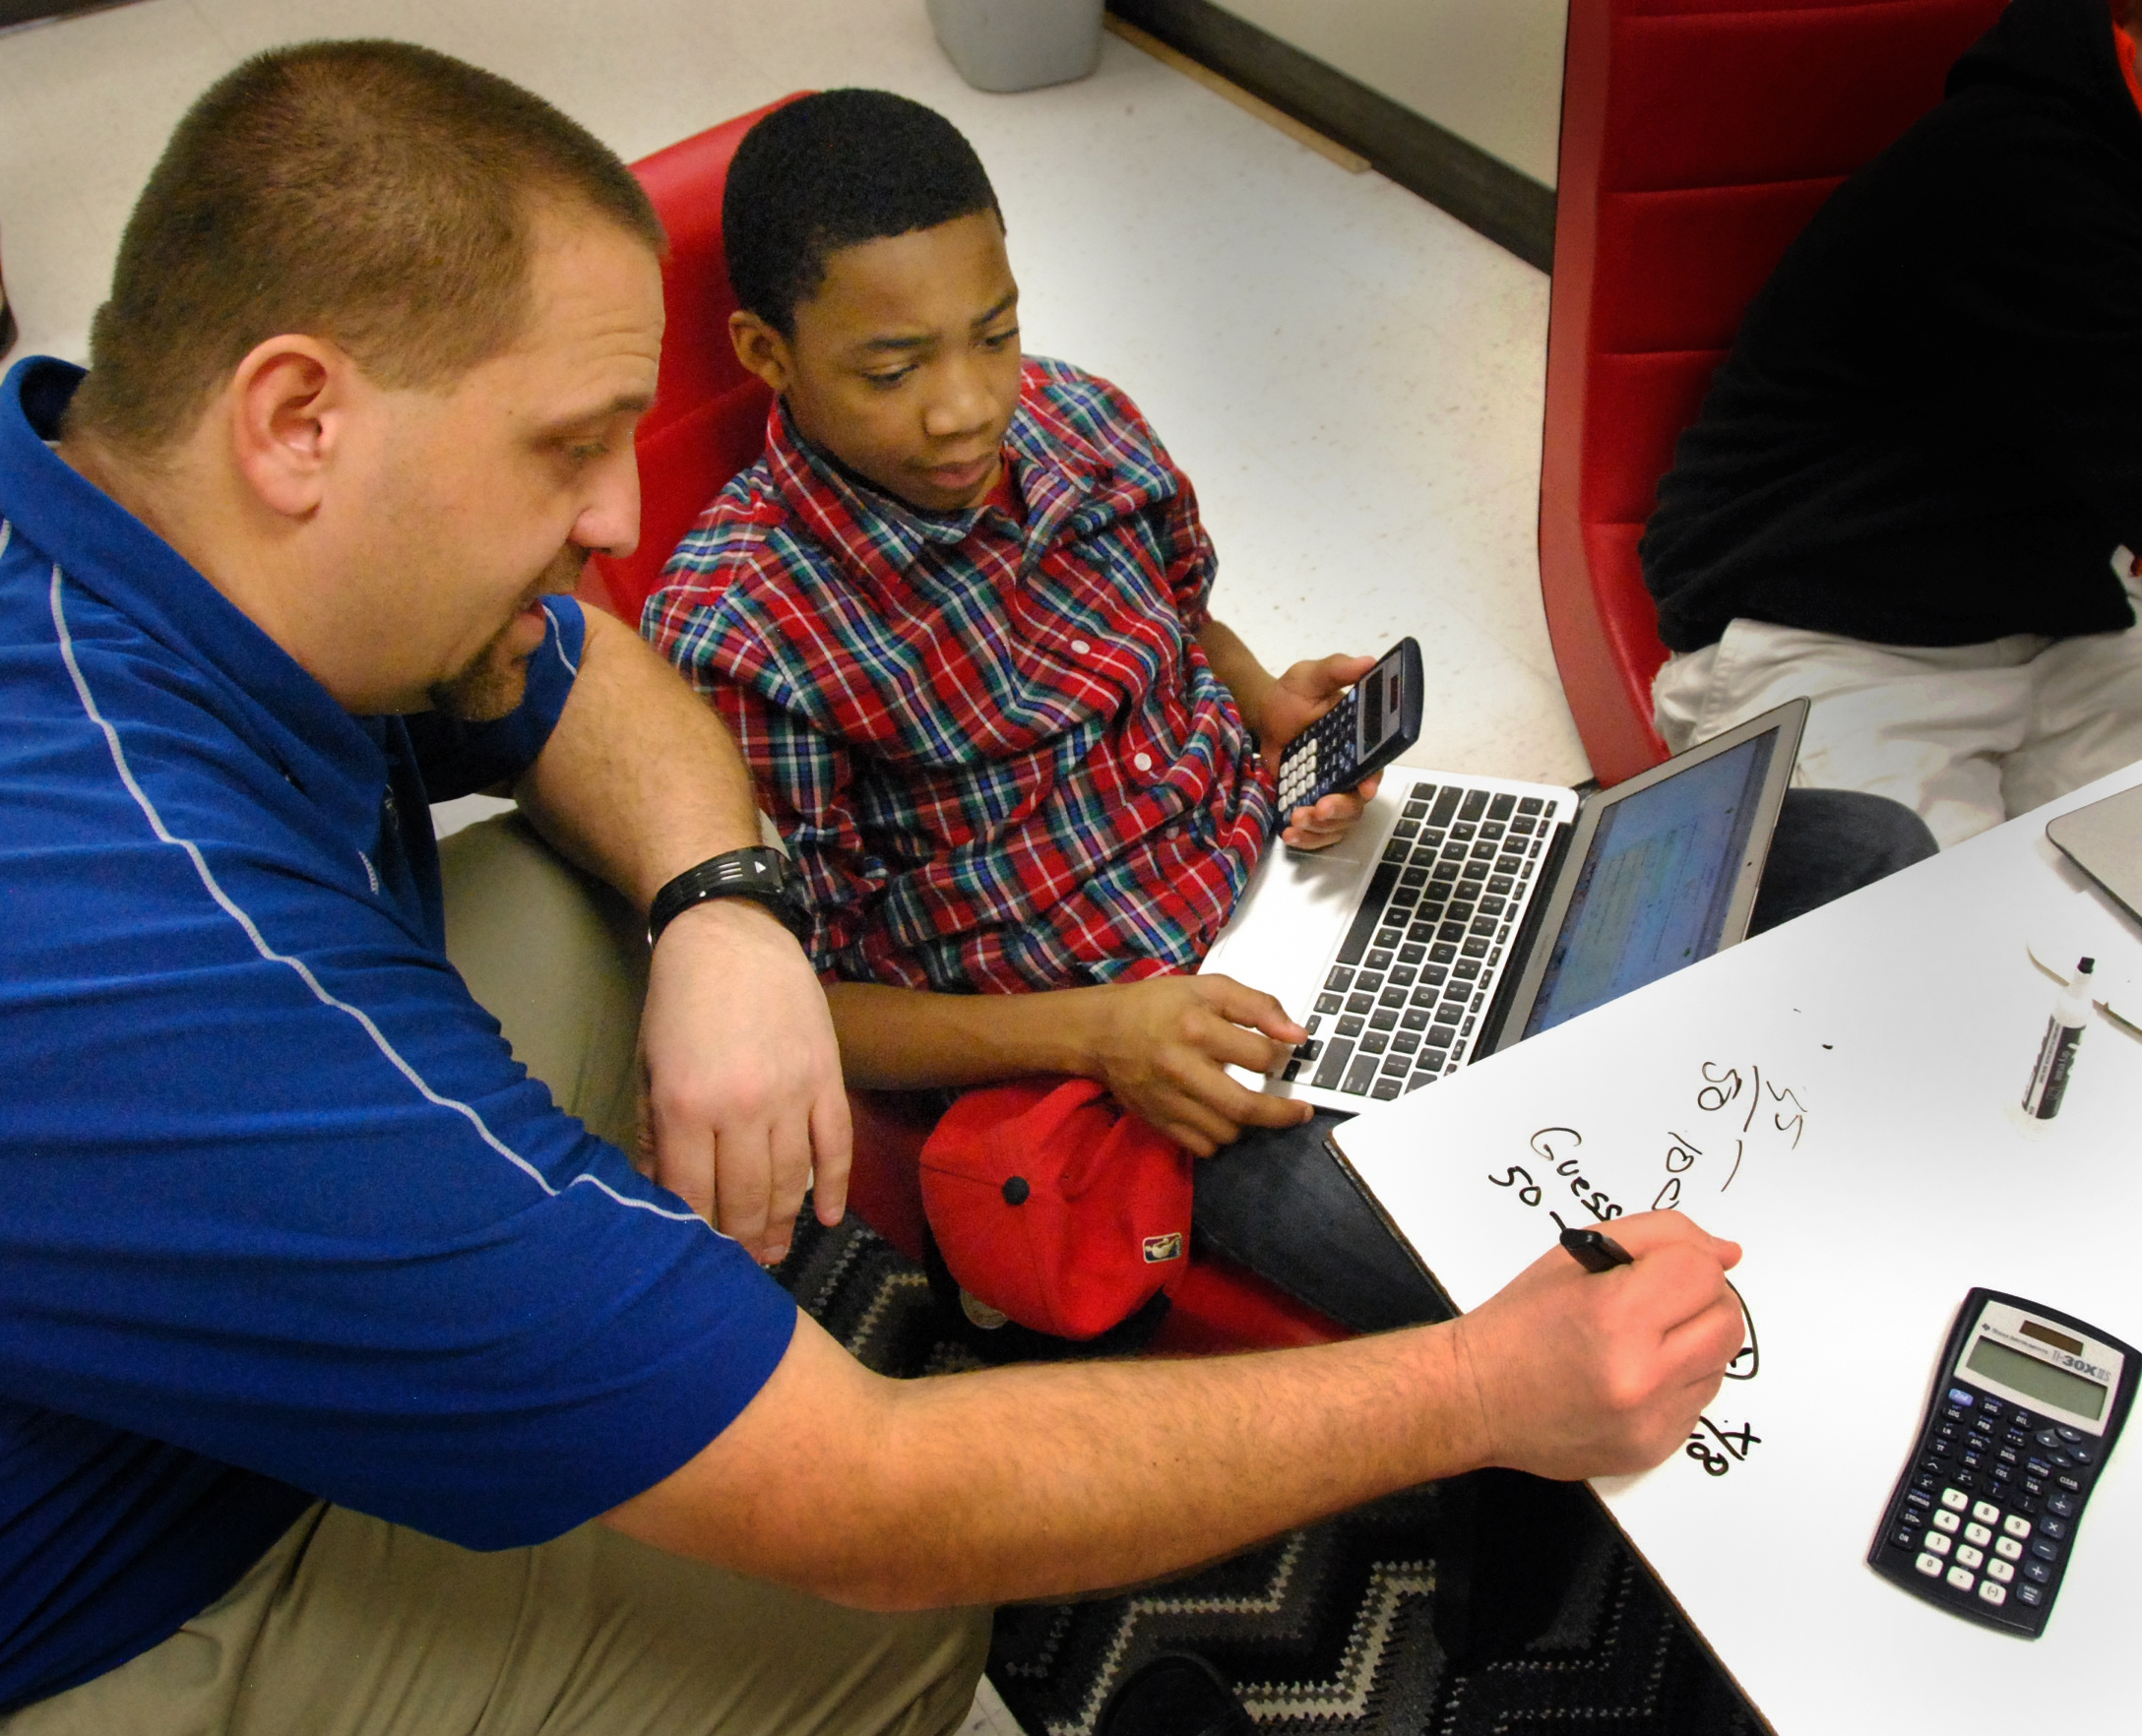 Caption: Working a math problem at Mooresville Middle School in North Carolina, where each student gets a laptop., Credit: Stephen Smith